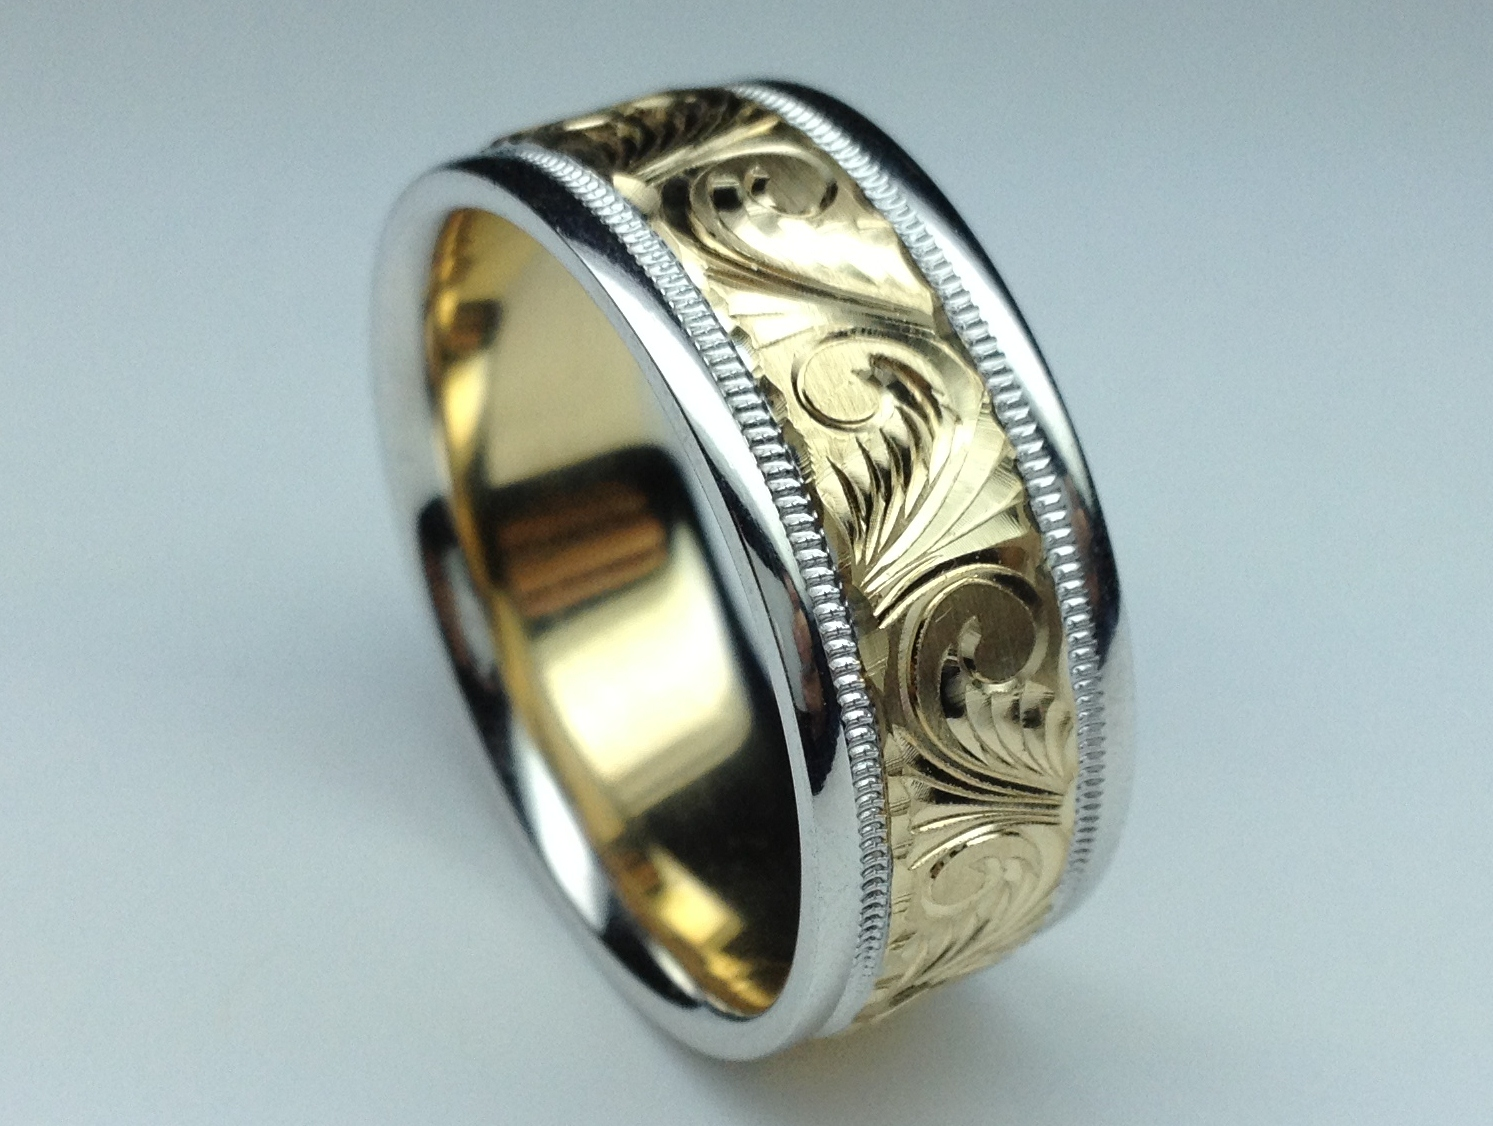 customized cute engraved box rings goldsmiths ideas poetry engraving ring wedding